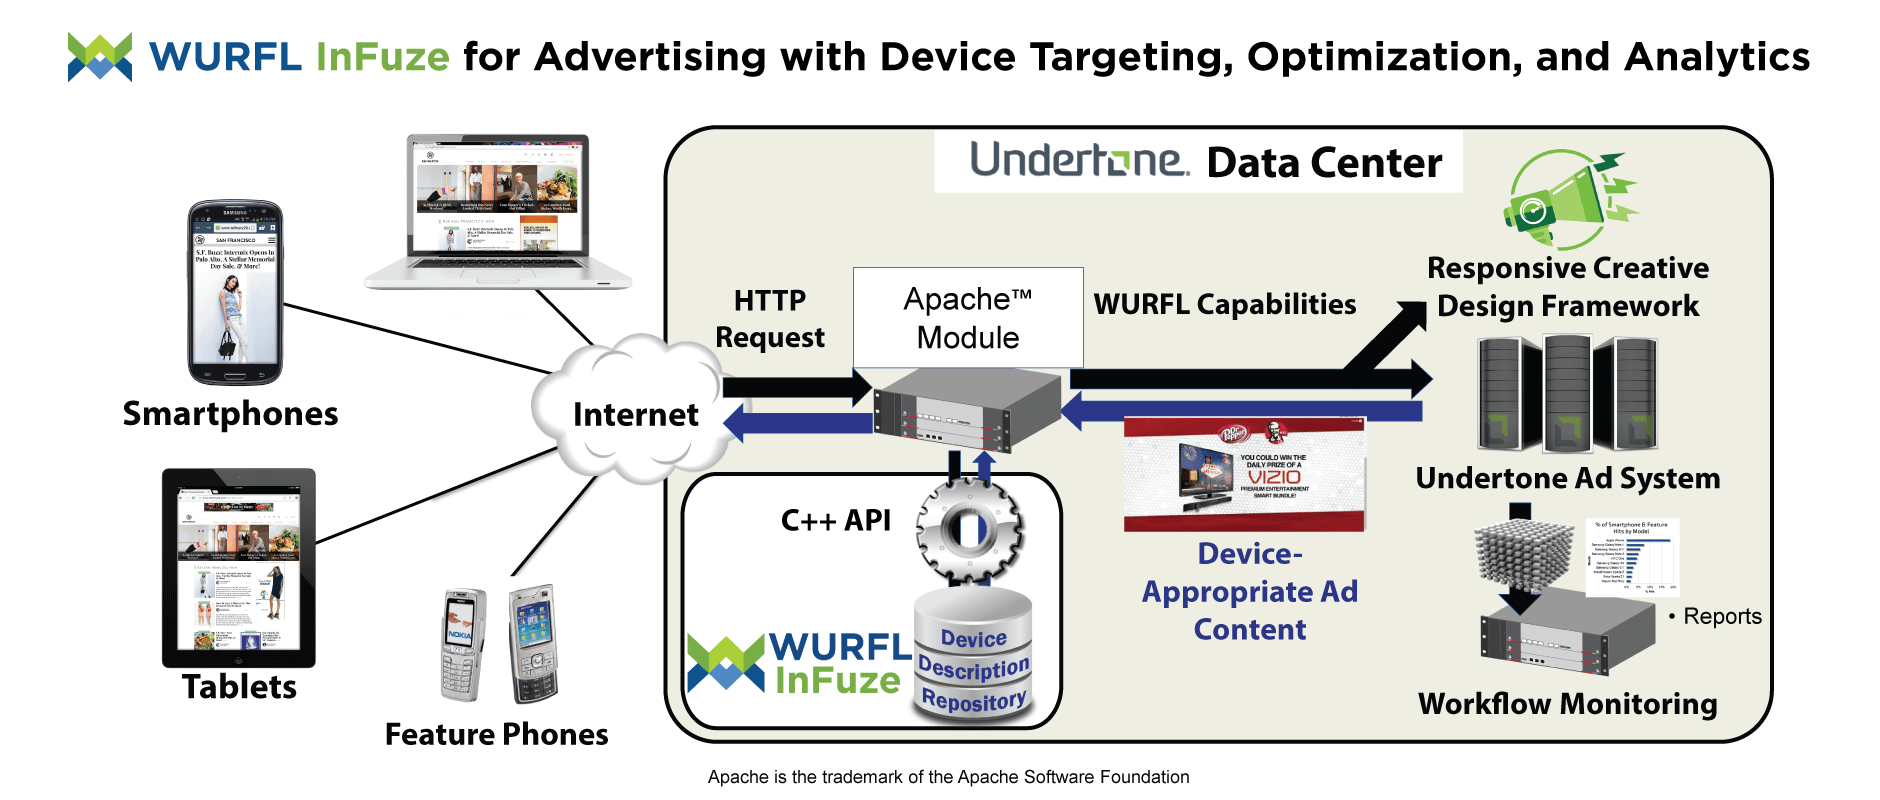 WURFL InFuze for Advertising with Device Targeting, Optimization, and Analytics